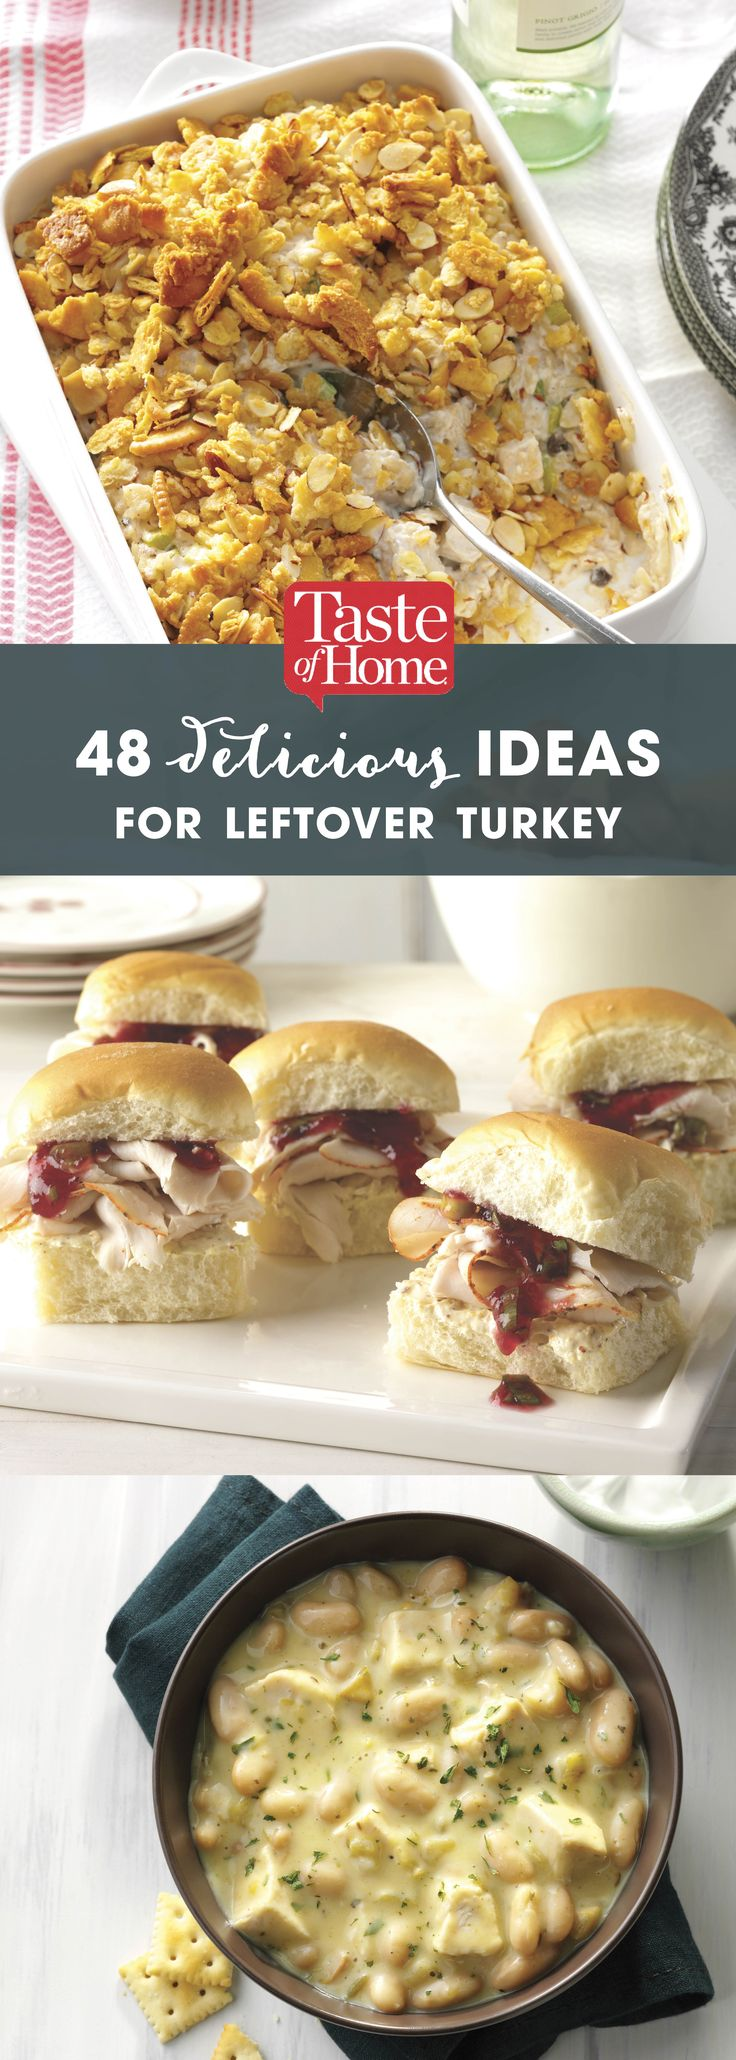 48 Delicious Ideas for Leftover Turkey (from Taste of Home)